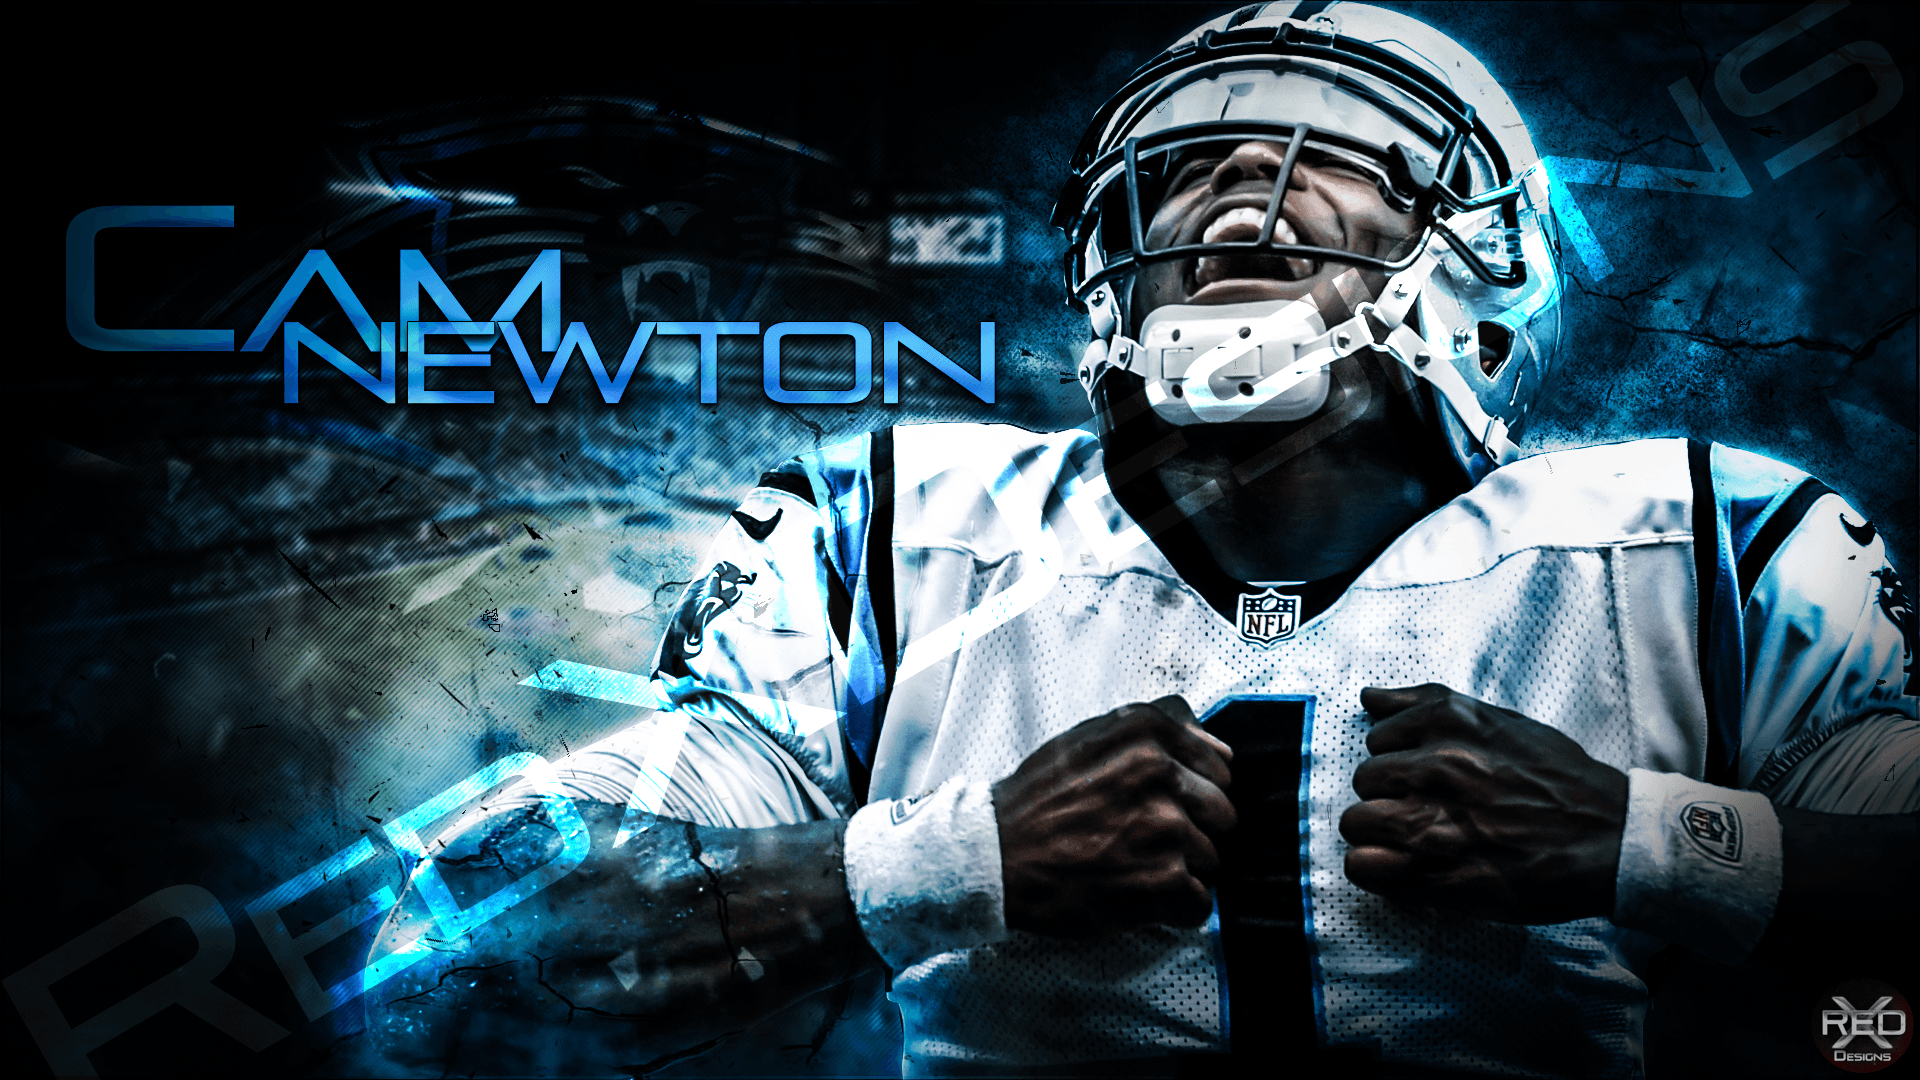 Selling Cam Newton Wallpapers and Von Miller Avi for .5 each